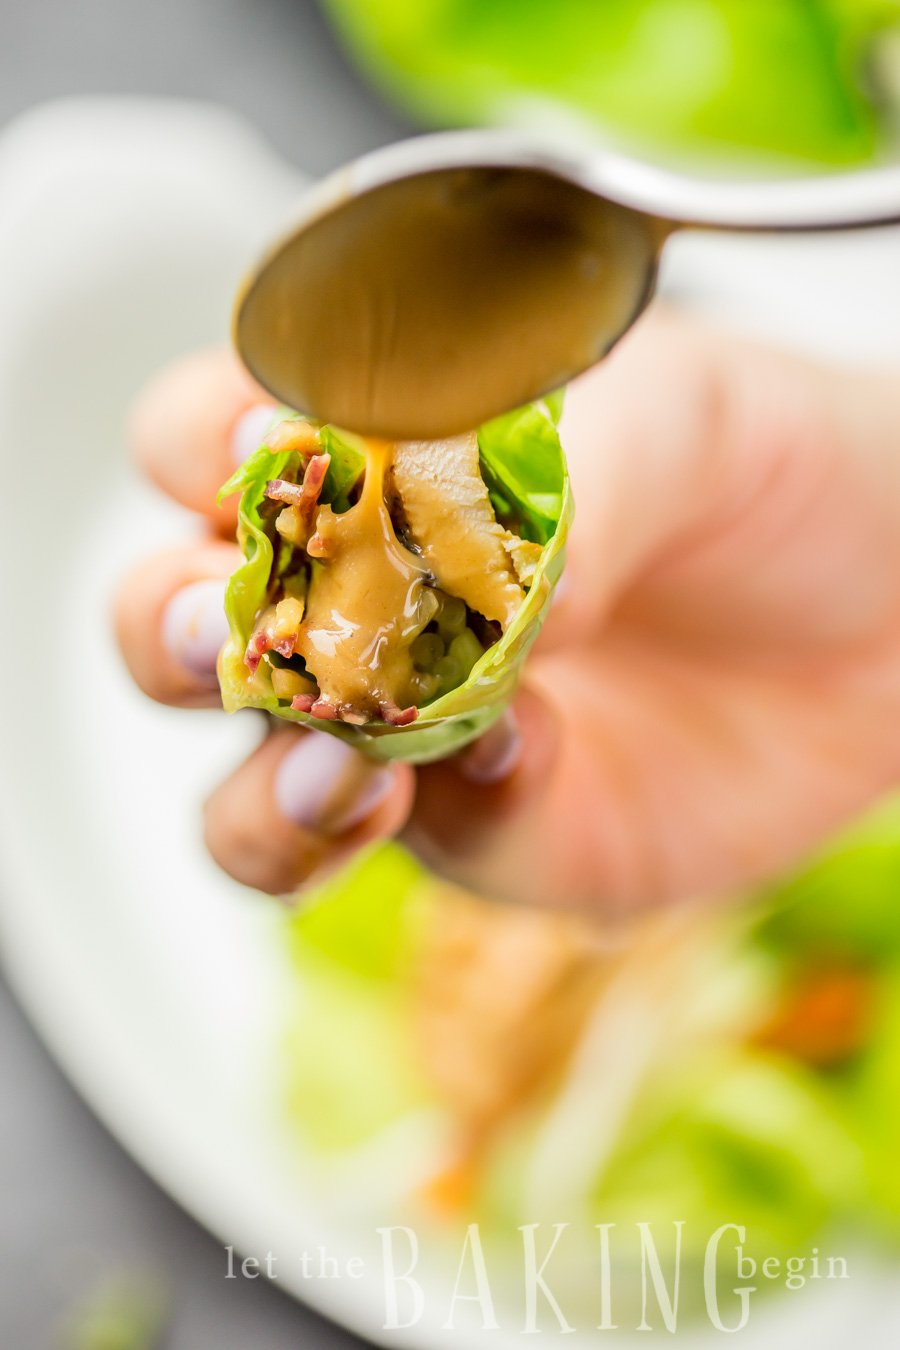 A lettuce wrap with Thai chicken with peanut sauce drizzled on top.